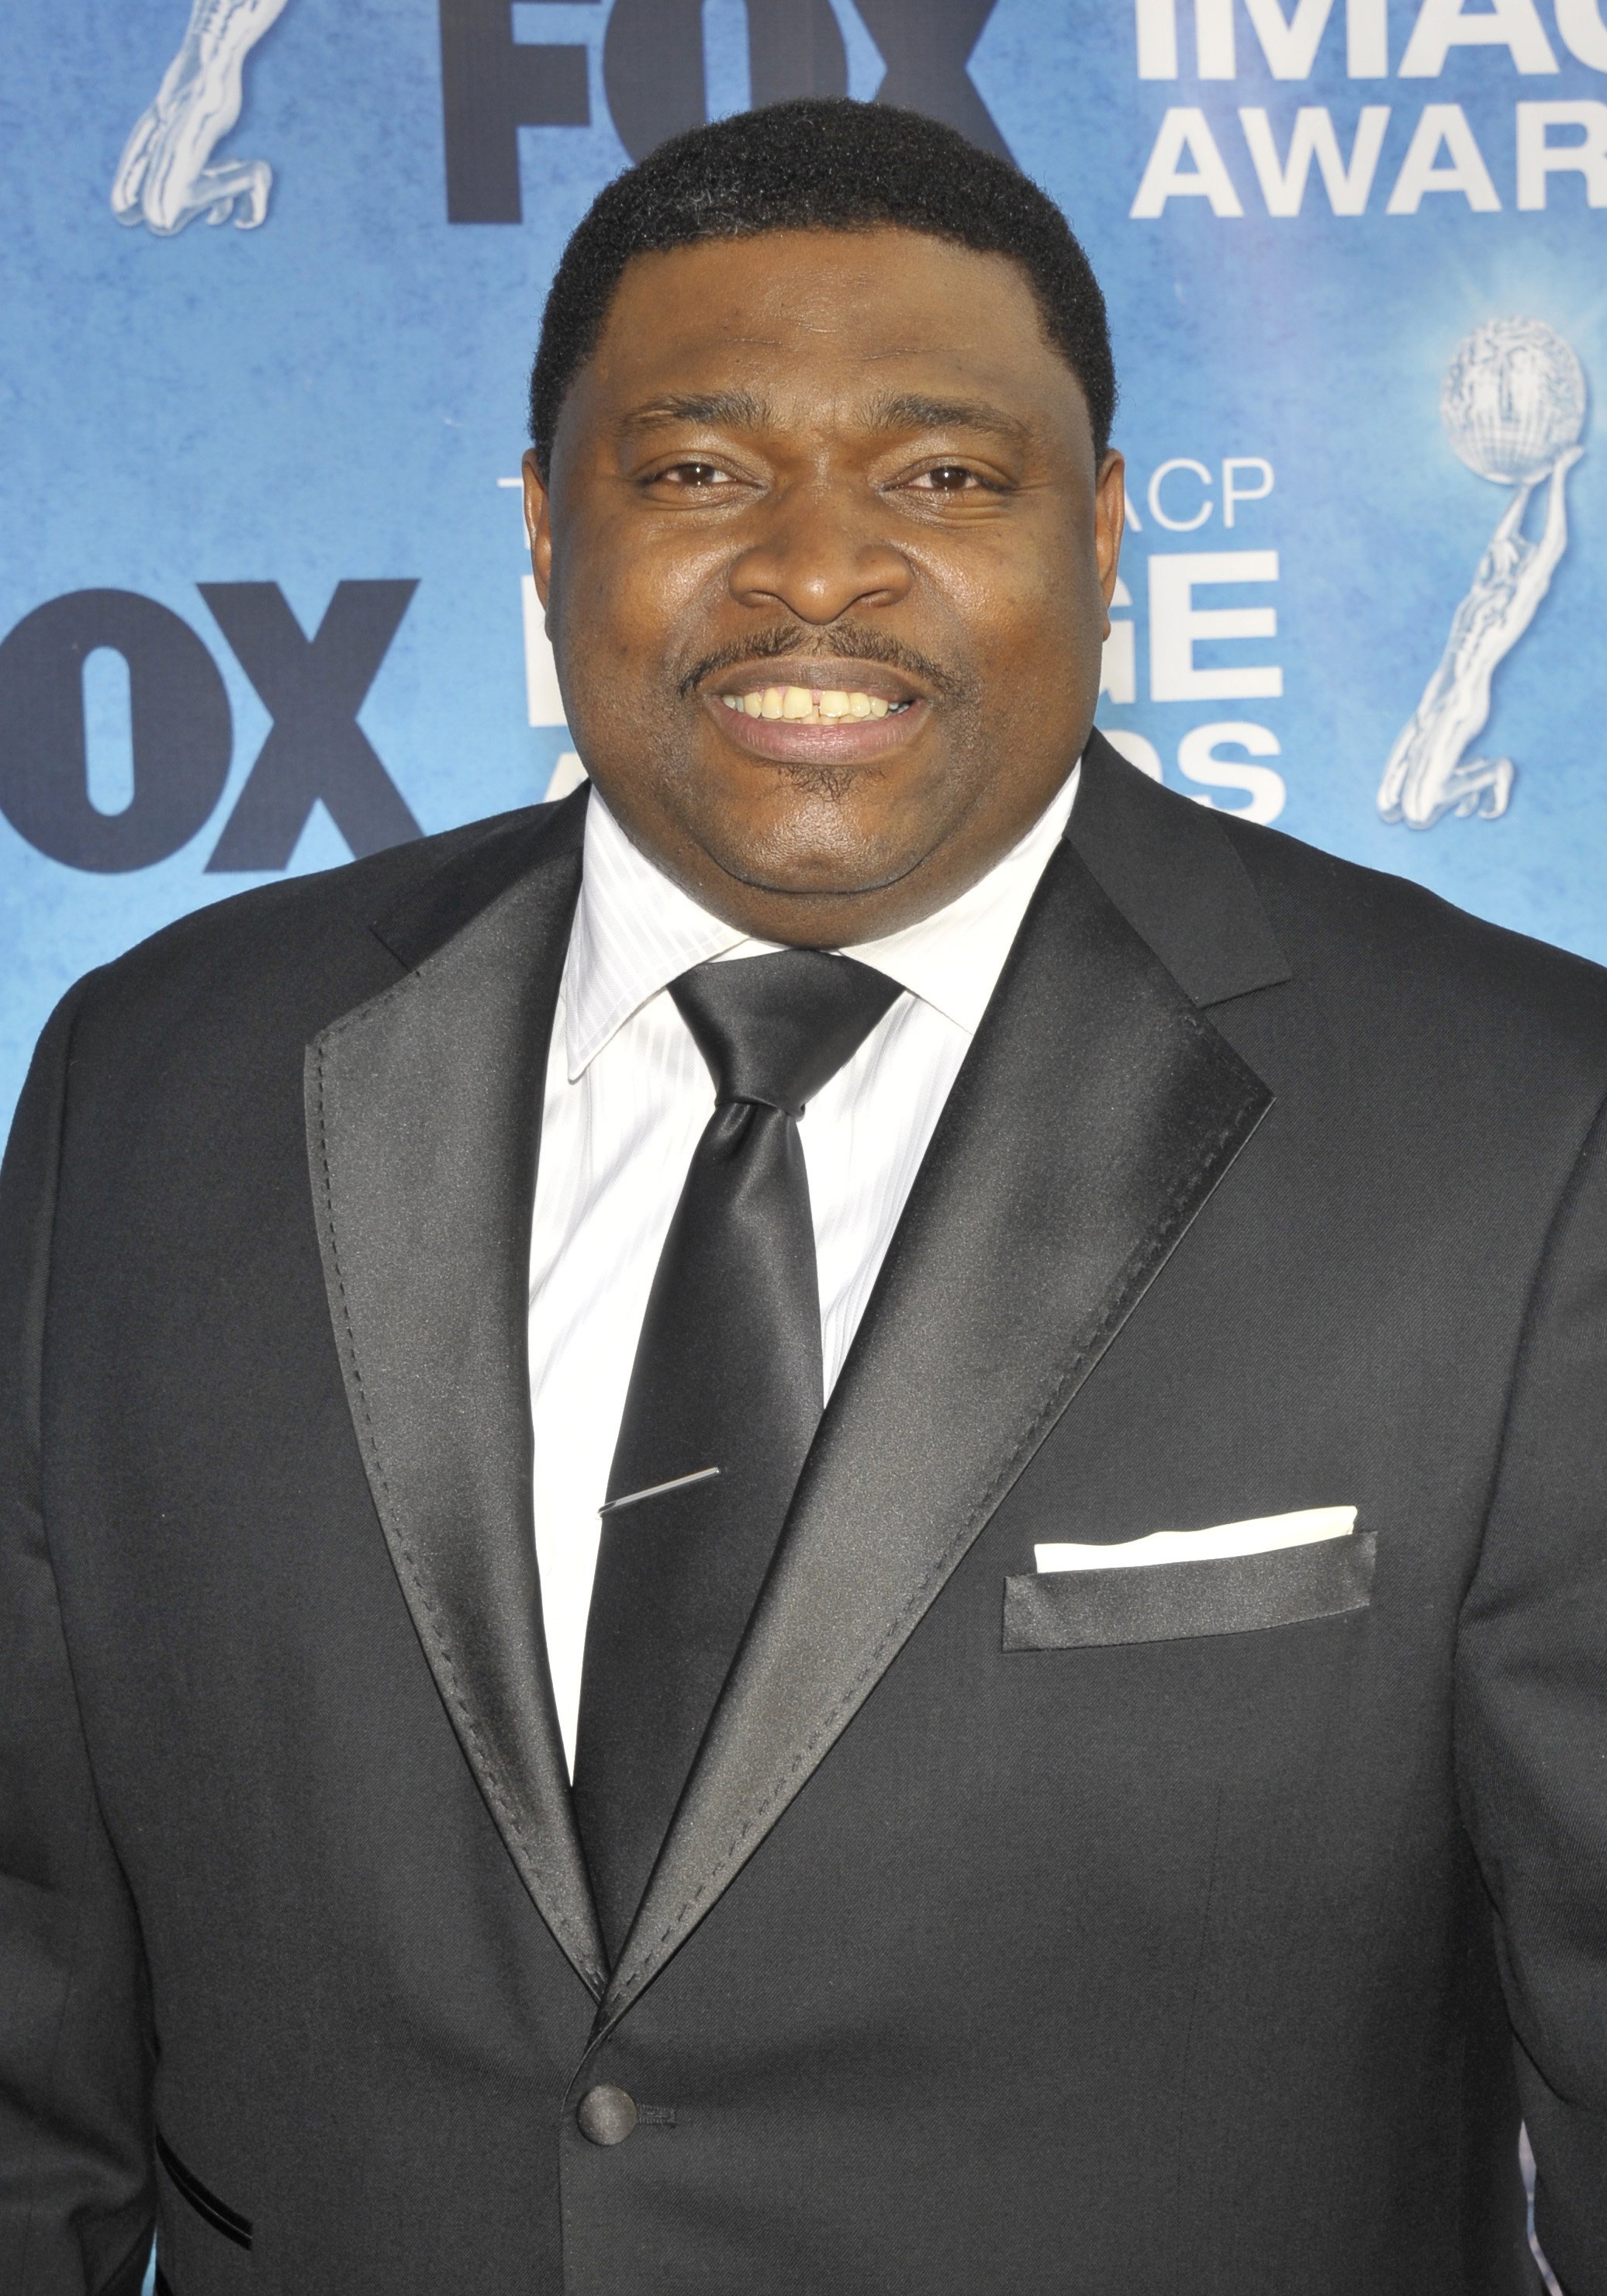 LaVan Davis on March 4, 2011 in Los Angeles, California | Photo: Getty Images